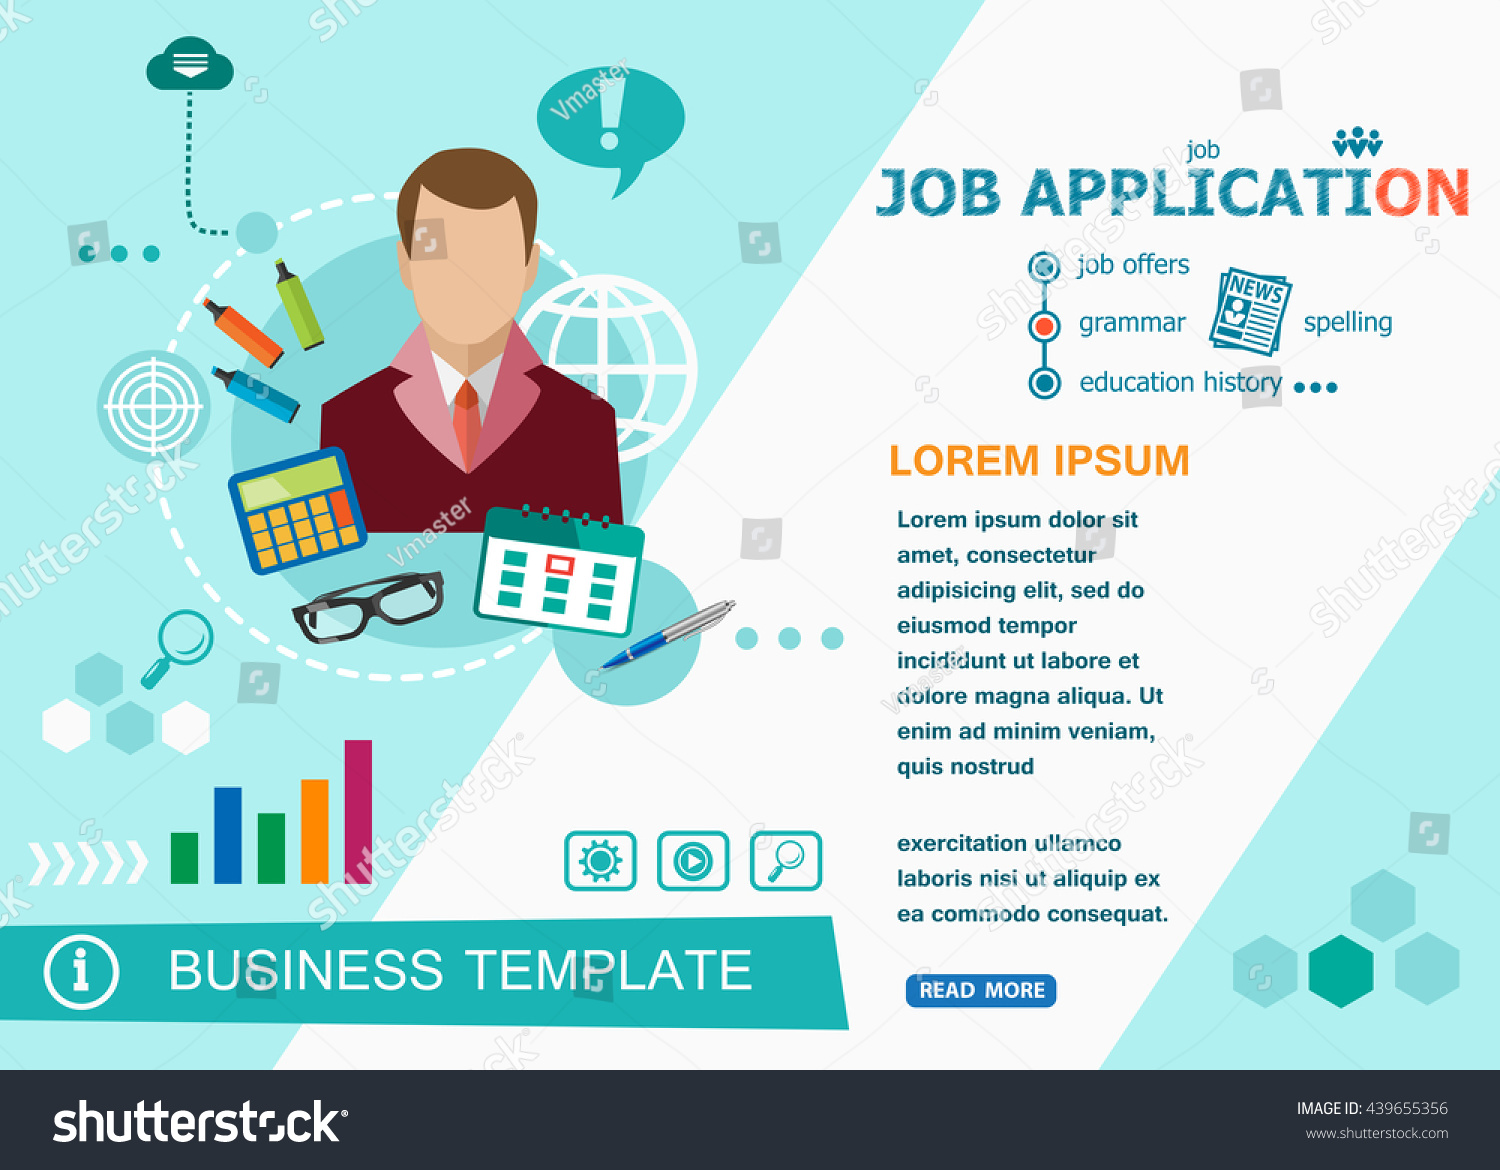 Job Application Design Concepts Words Learning Stock Vector Royalty Free 439655356